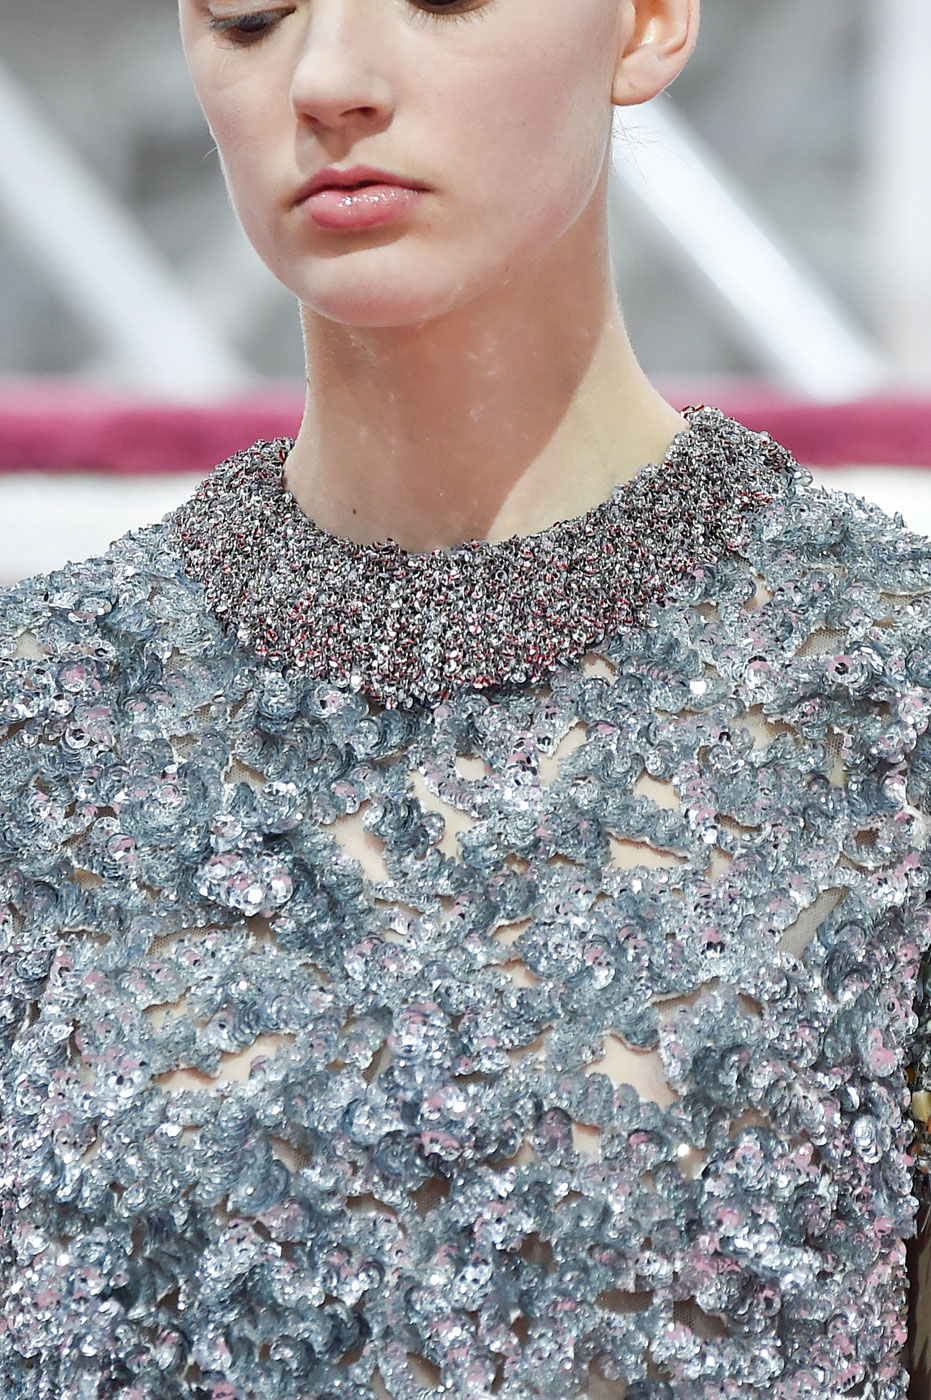 Christian-Dior-fashion-runway-show-close-ups-haute-couture-paris-spring-summer-2015-the-impression-093